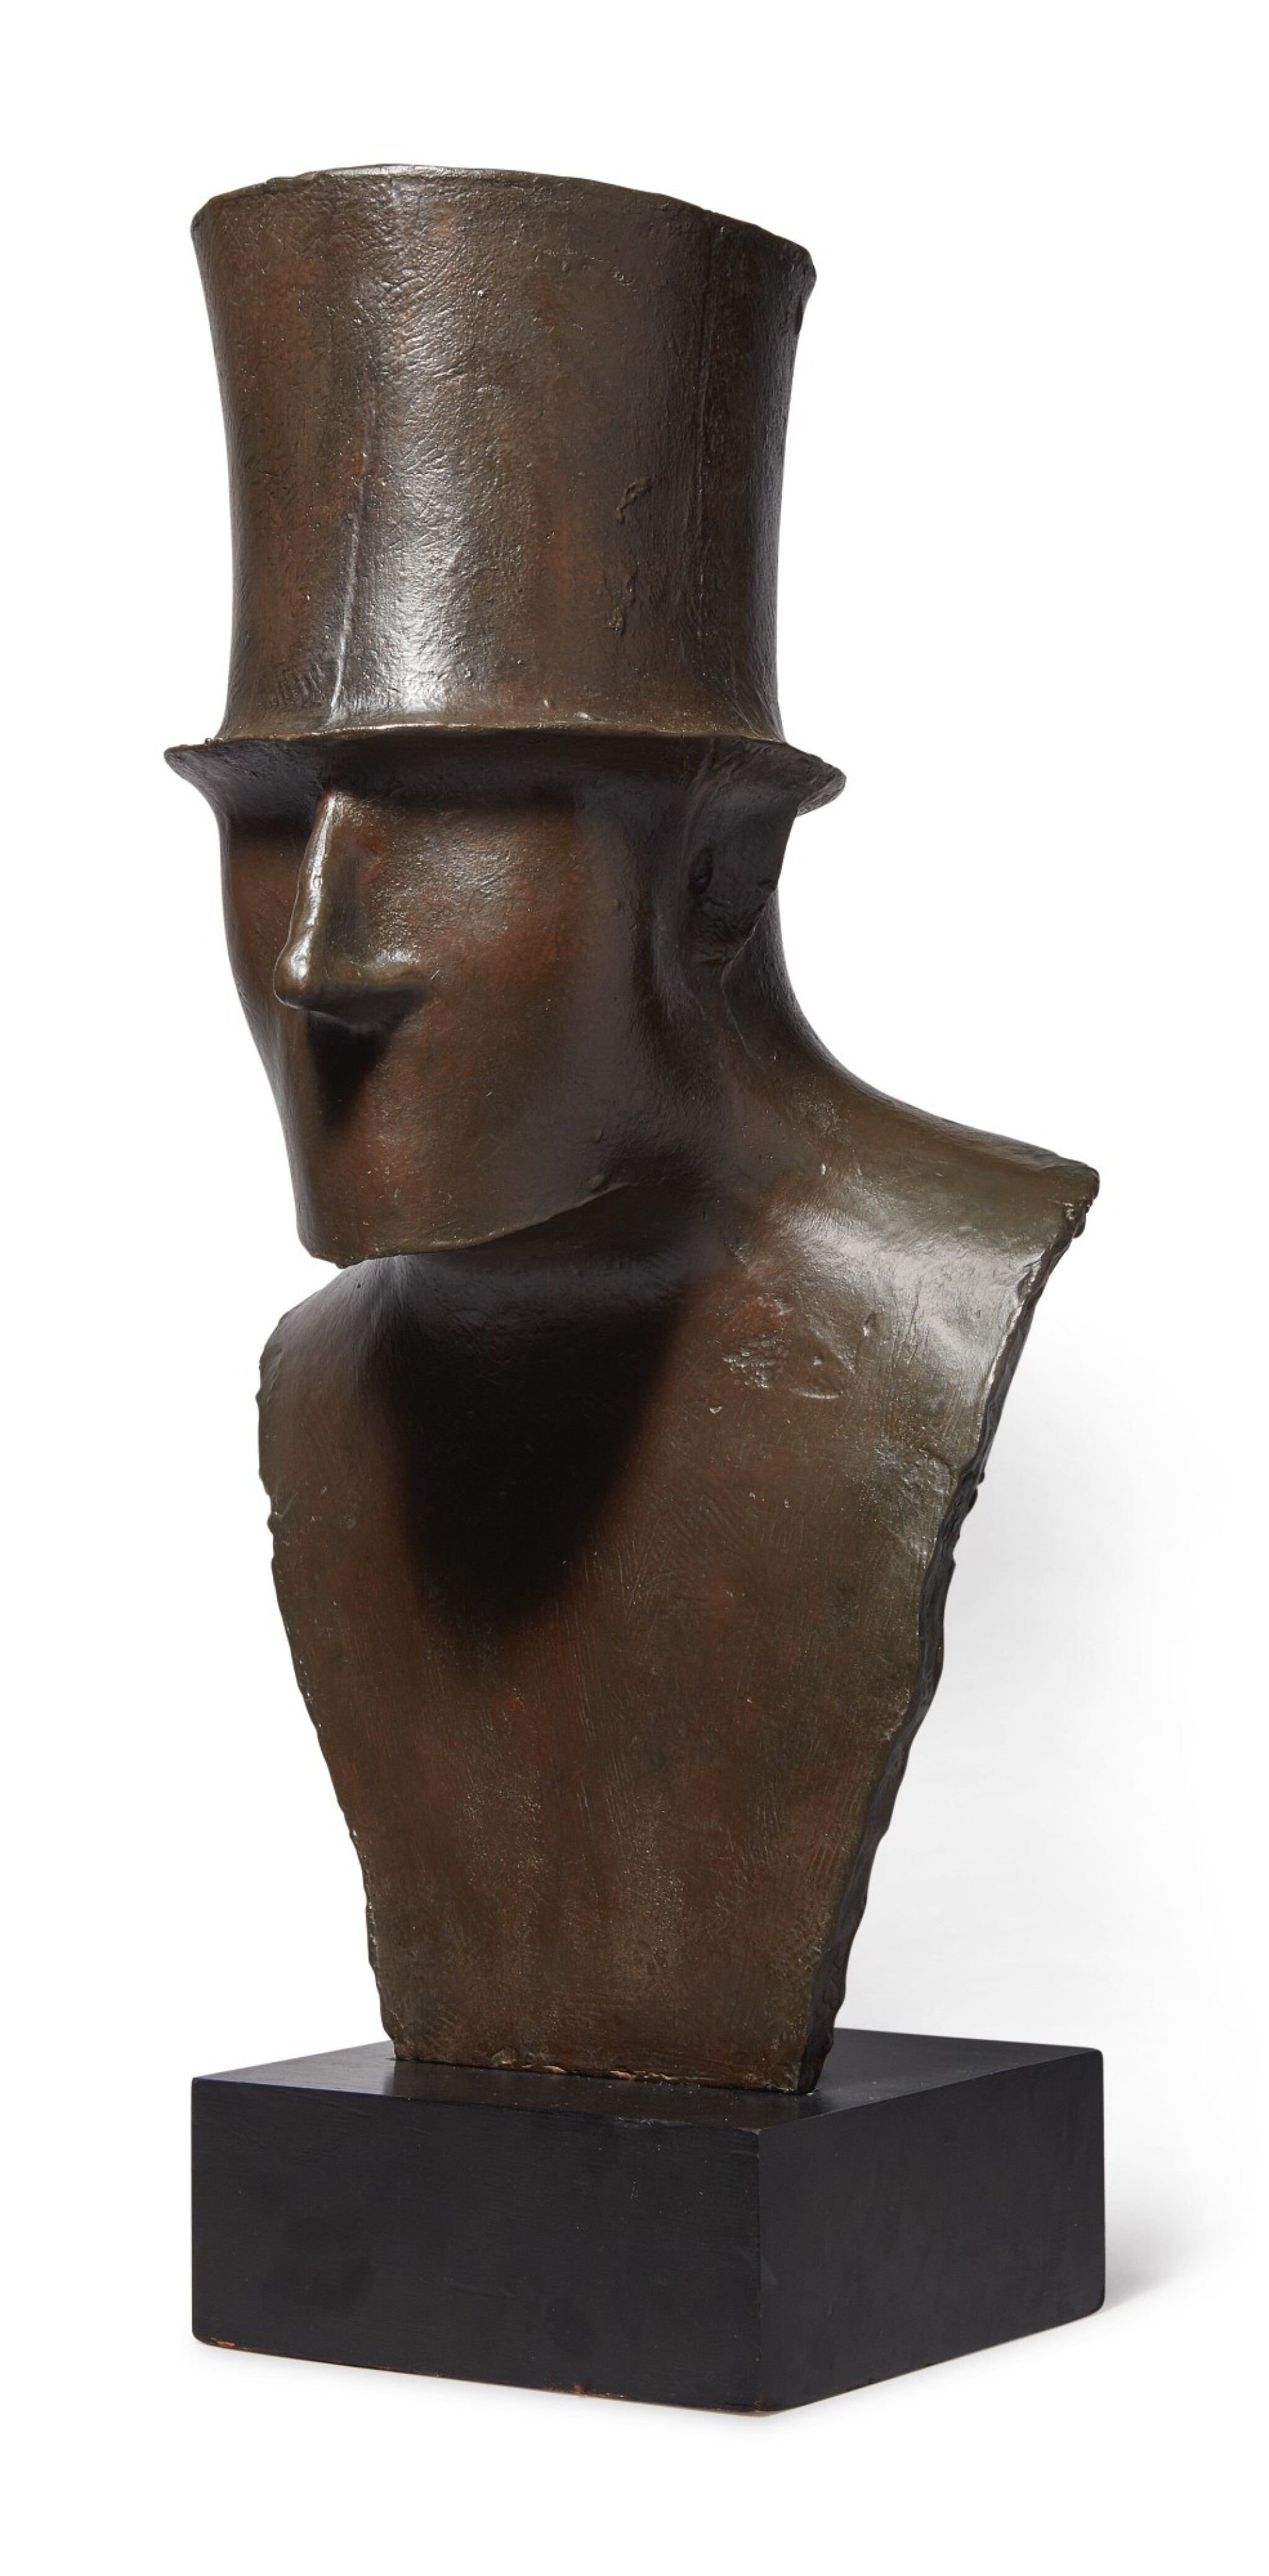 View 1 of Lot 145. Man in Top Hat.